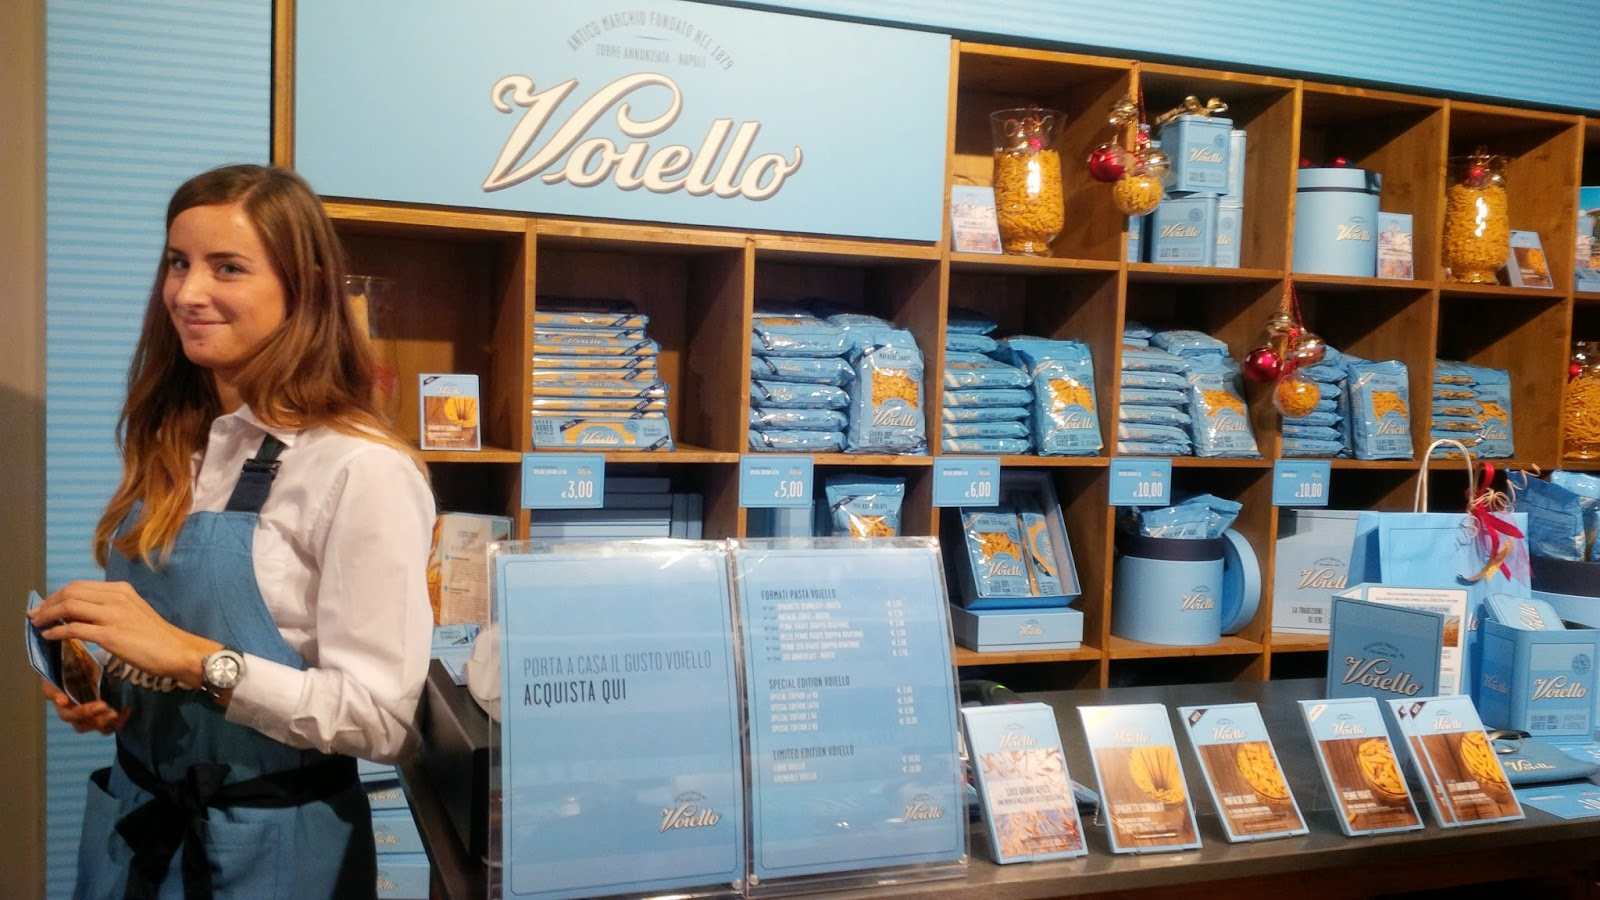 A pop-up pasta shop at Taste of Christmas event in AMO, Verona